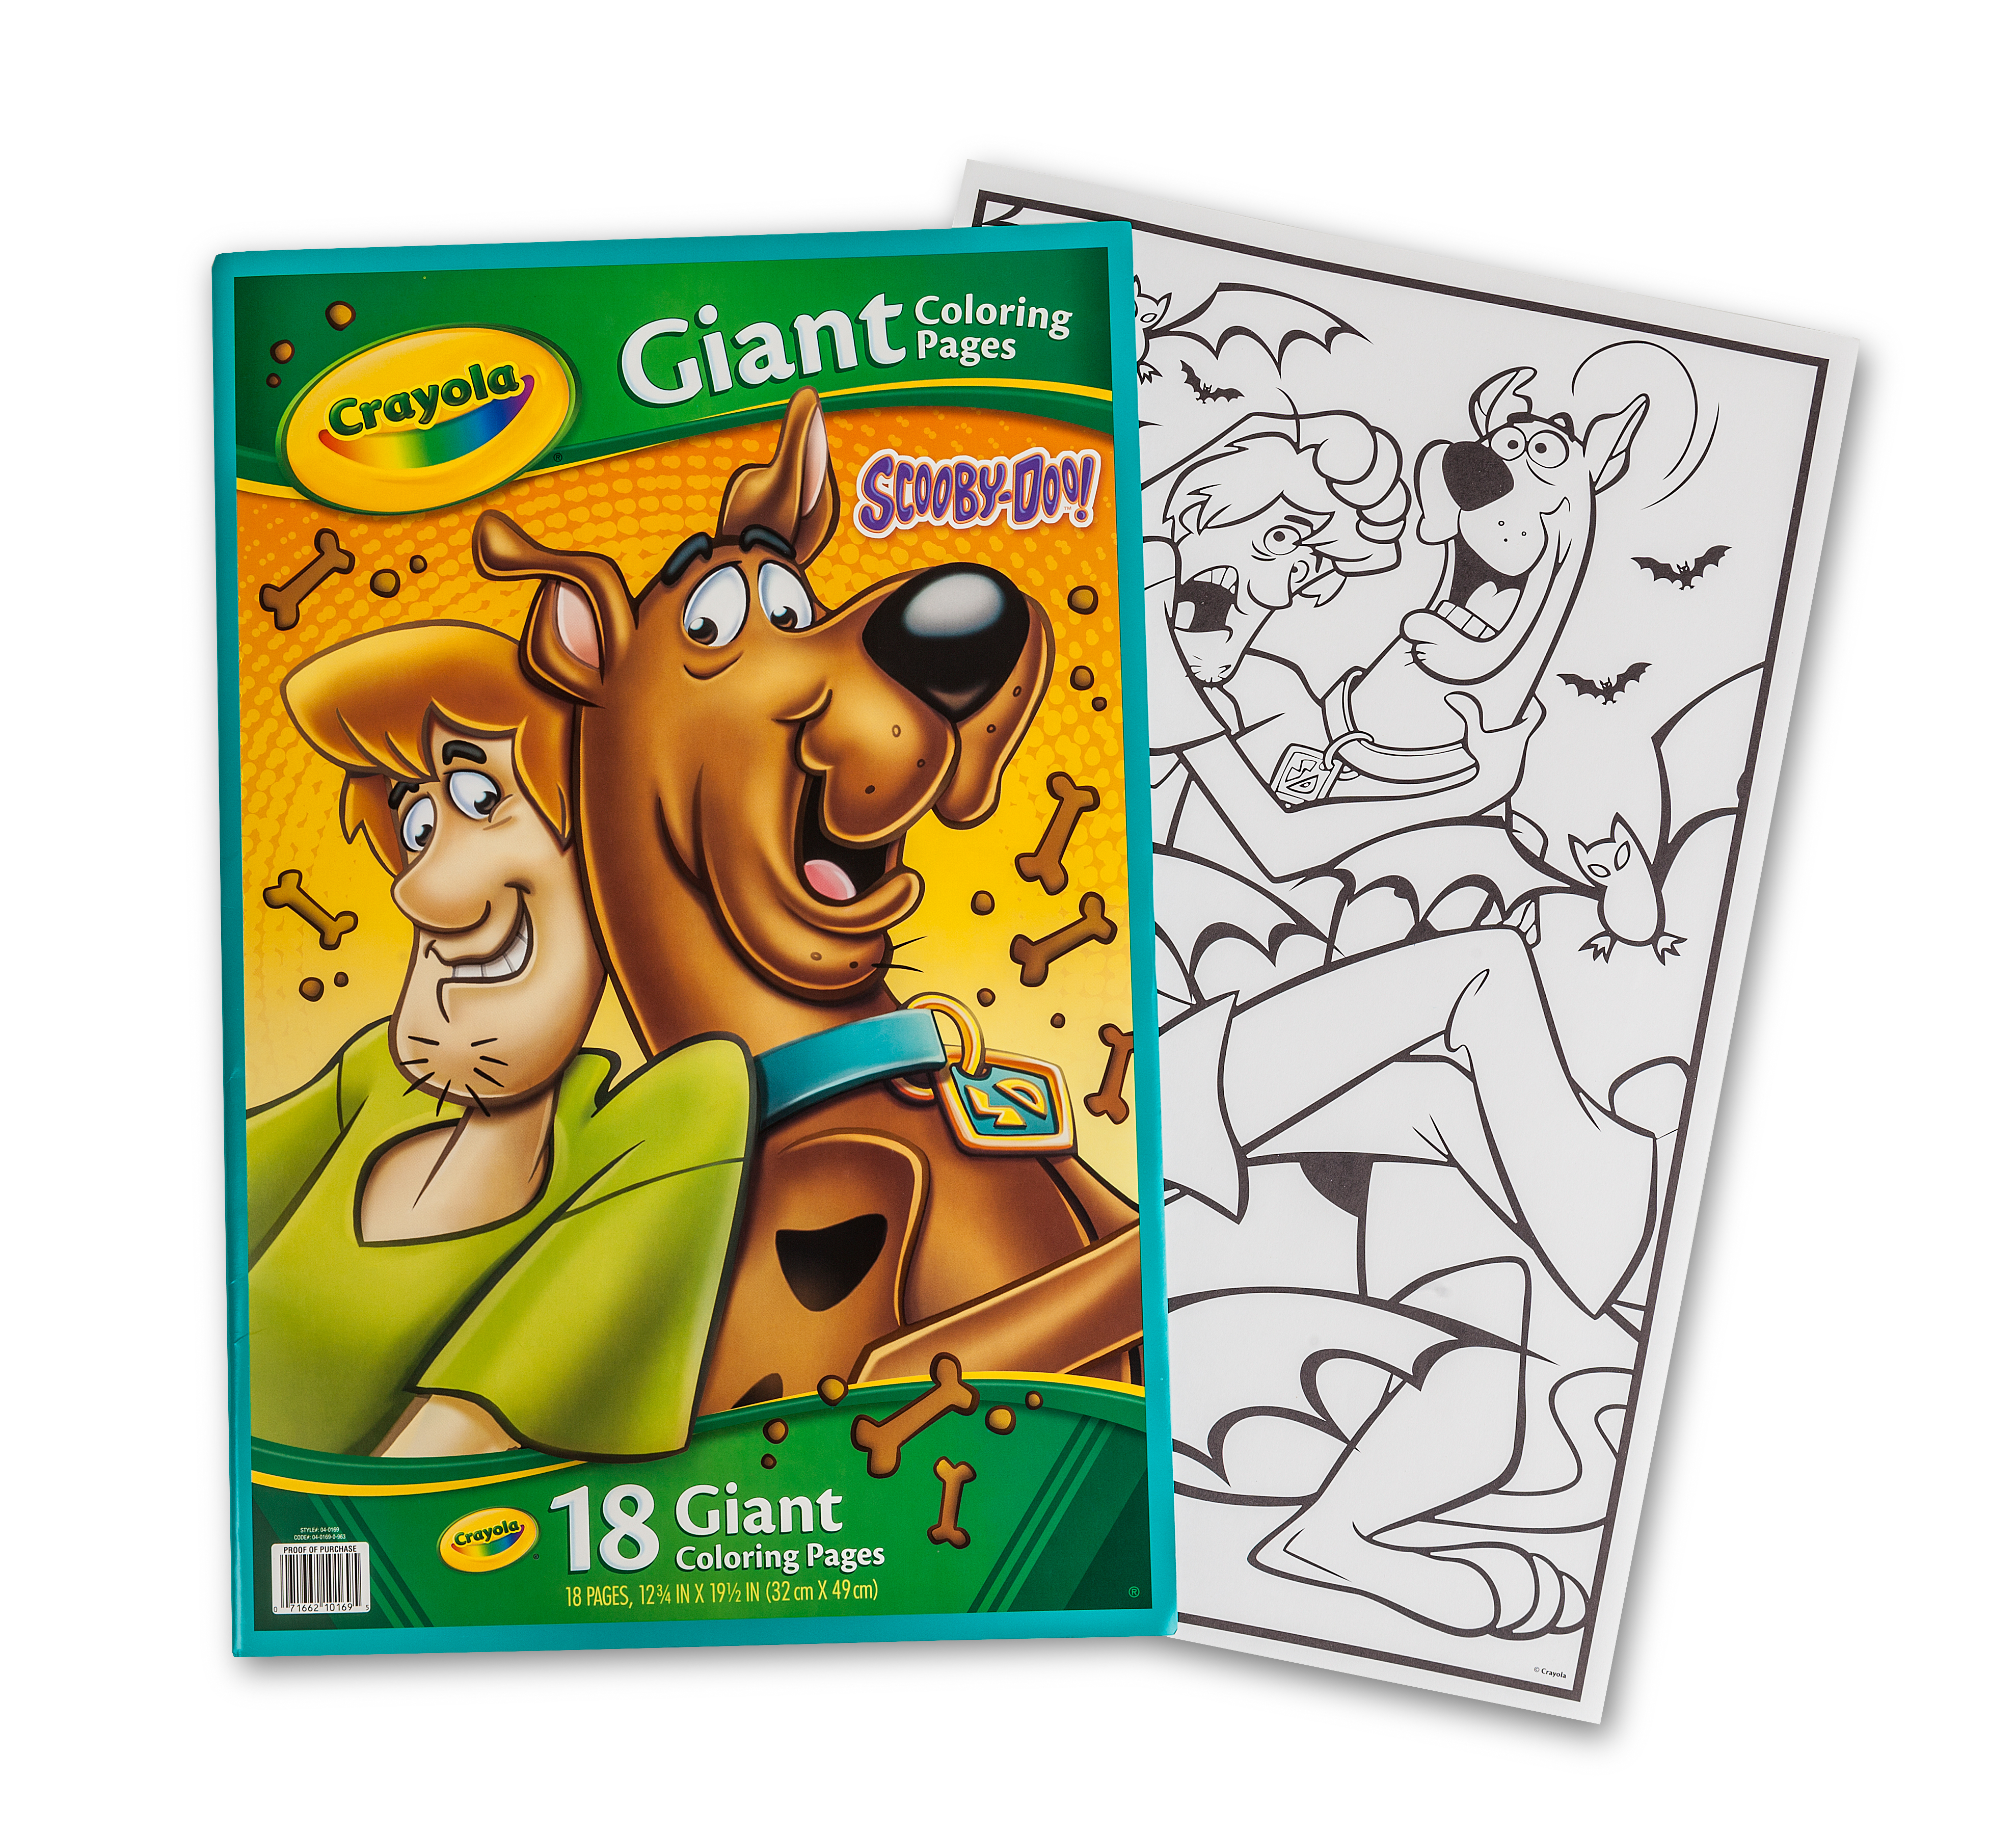 Giant Coloring Pages - Scooby Doo | Crayola